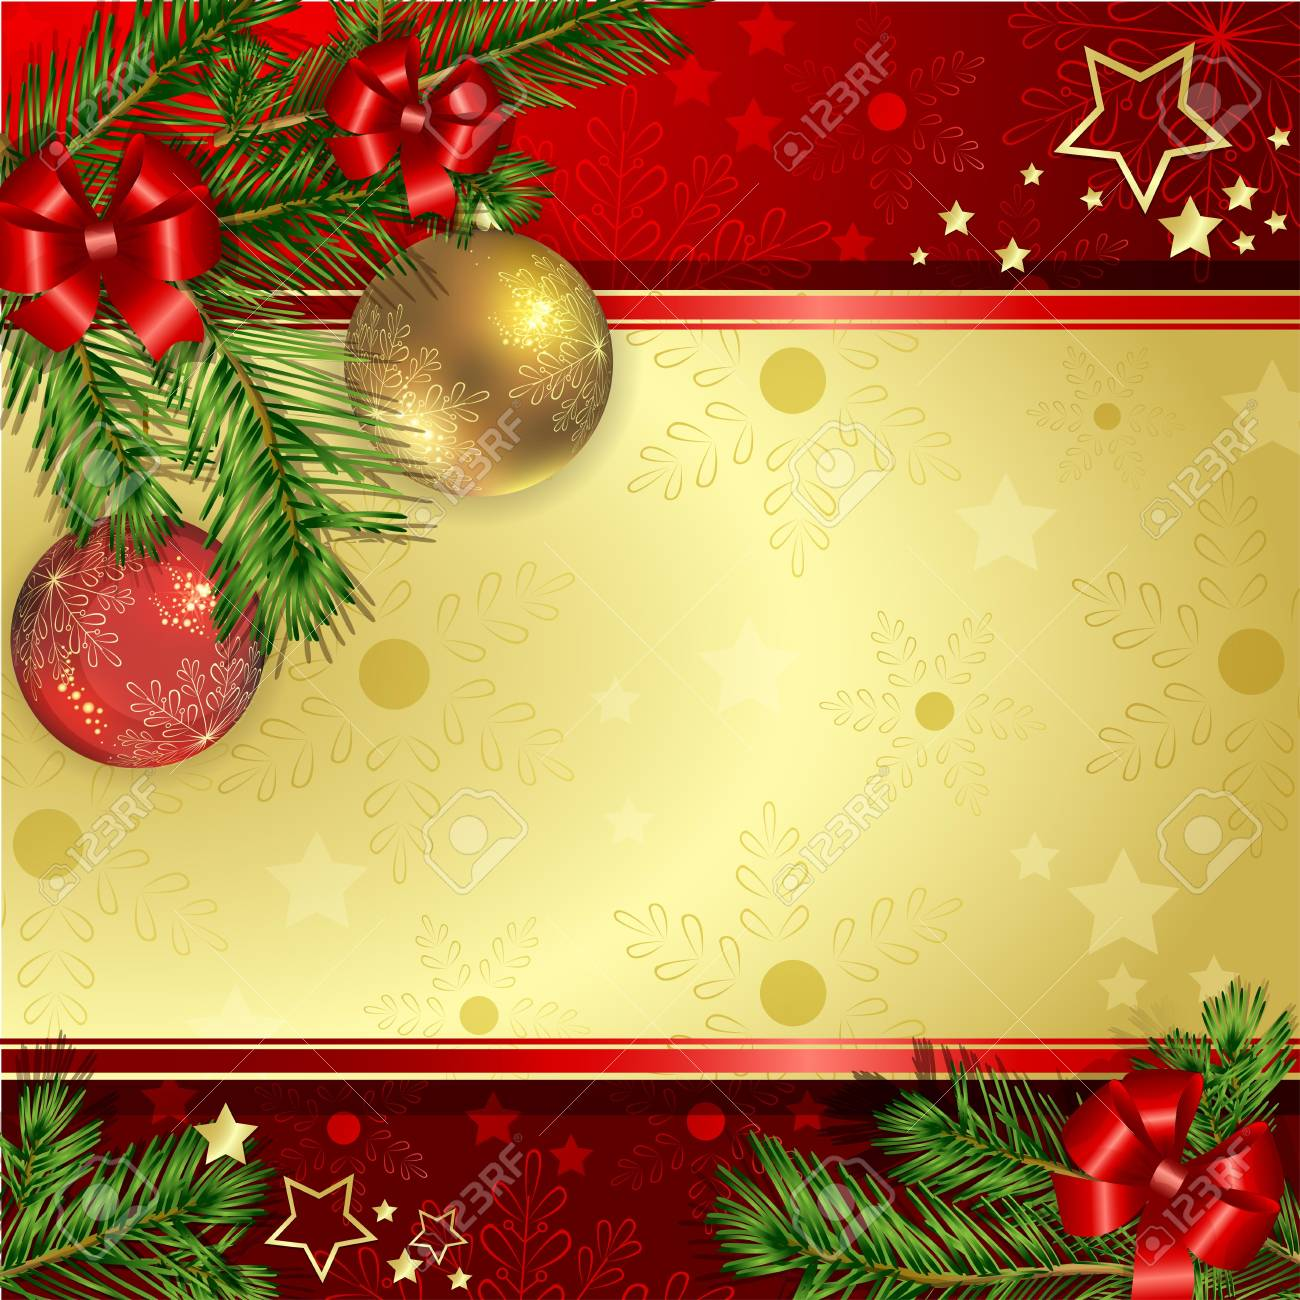 Christmas background with pine branch Stock Vector - 17632969